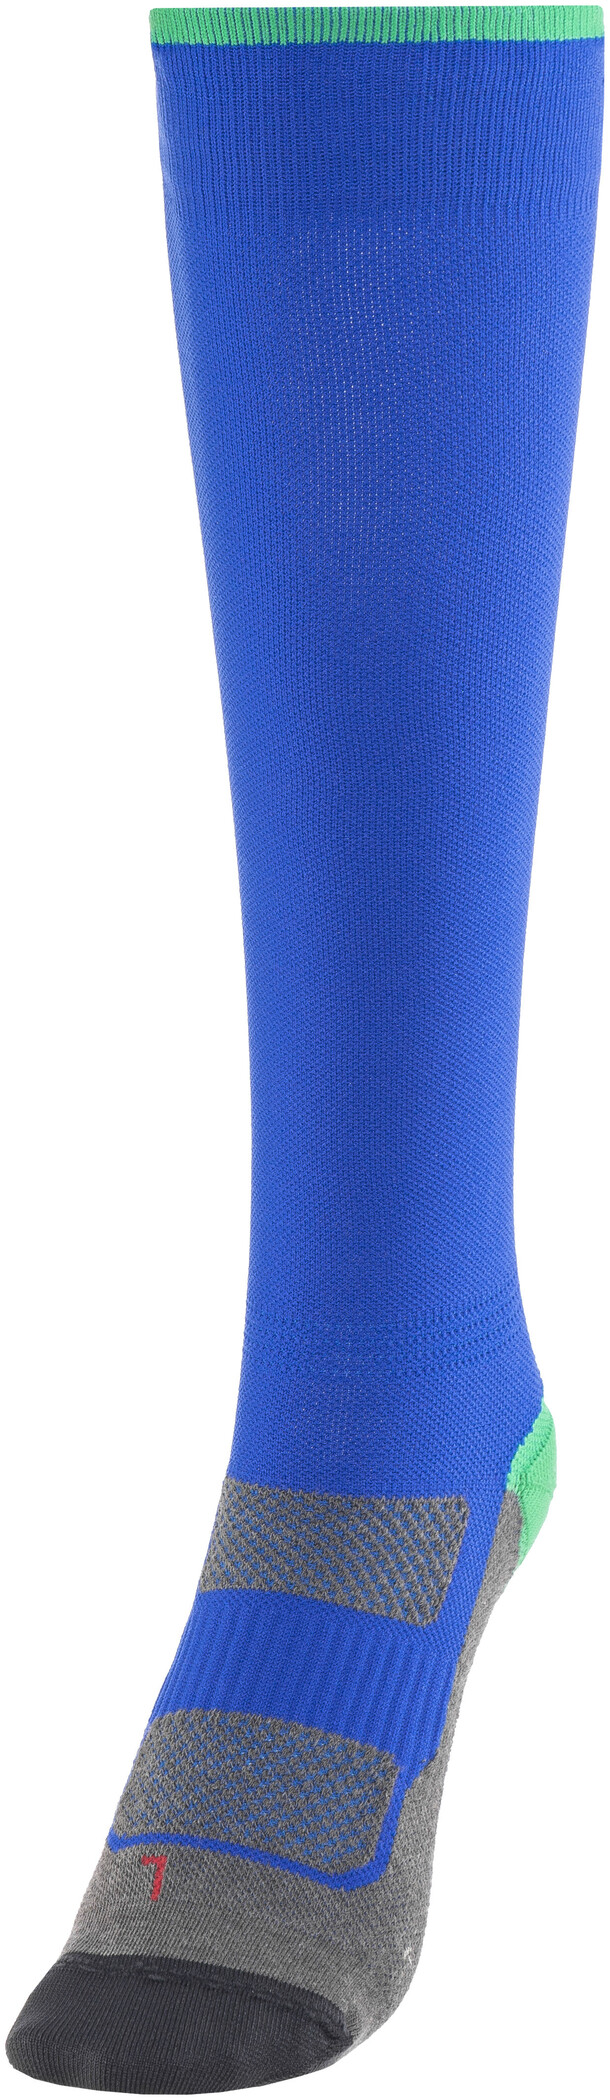 Gococo Compression Superior Strømper, blue (2019) | Compression